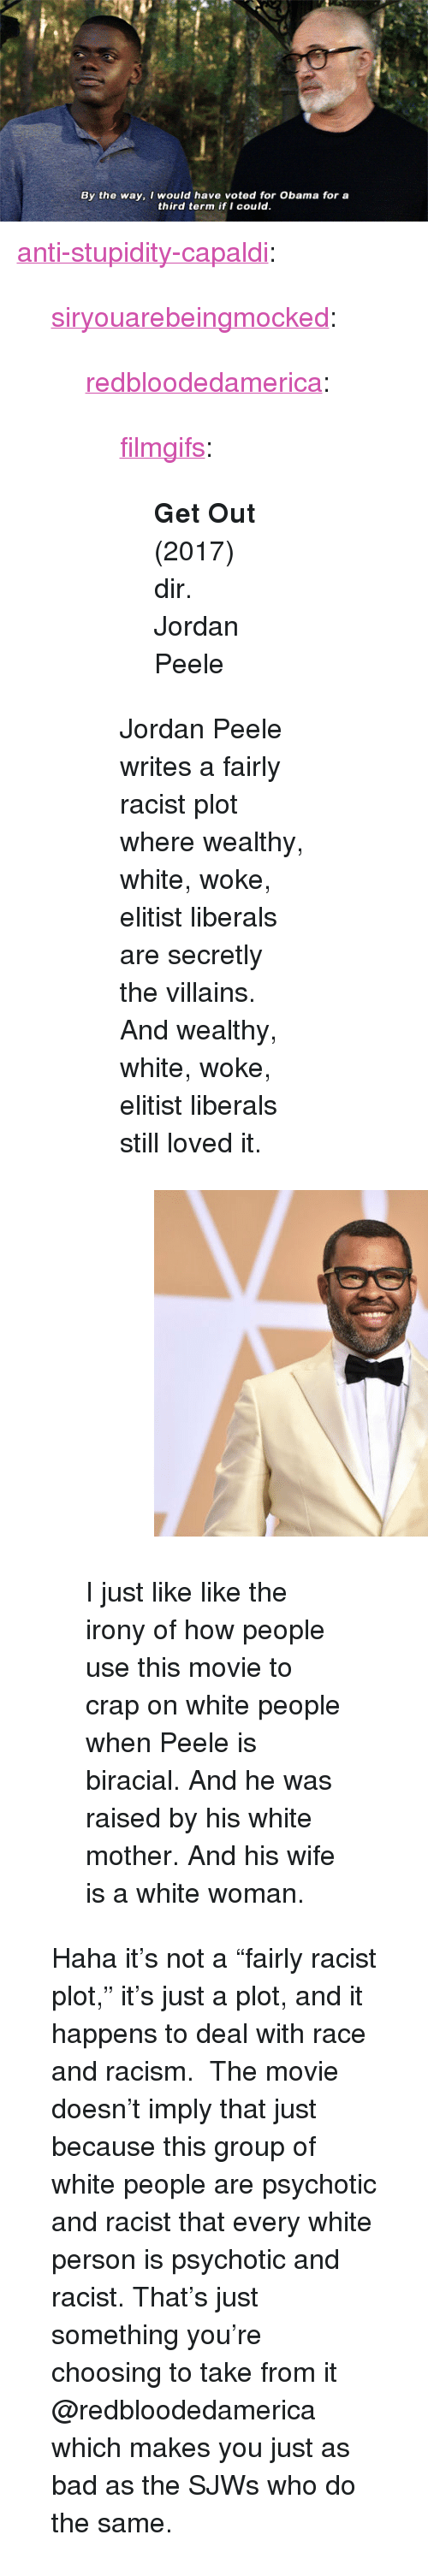 "Bad, Jordan Peele, and Obama: By the way, I would have voted for Obama for a  third term if I could. <p><a href=""http://anti-stupidity-capaldi.tumblr.com/post/173721140685/siryouarebeingmocked-redbloodedamerica"" class=""tumblr_blog"">anti-stupidity-capaldi</a>:</p>  <blockquote><p><a href=""http://siryouarebeingmocked.tumblr.com/post/173720695475/redbloodedamerica-filmgifs-get-out-2017-dir"" class=""tumblr_blog"">siryouarebeingmocked</a>:</p><blockquote> <p><a href=""http://redbloodedamerica.tumblr.com/post/173714990808/filmgifs-get-out-2017-dir-jordan-peele"" class=""tumblr_blog"">redbloodedamerica</a>:</p> <blockquote> <p><a href=""https://filmgifs.tumblr.com/post/173651818346/get-out-2017-dir-jordan-peele"" class=""tumblr_blog"">filmgifs</a>:</p> <blockquote><p><b>Get Out </b>(2017) dir. Jordan Peele</p></blockquote> <p>Jordan Peele writes a fairly racist plot where wealthy, white, woke, elitist liberals are secretly the villains.  And wealthy, white, woke, elitist liberals still loved it.</p> <figure class=""tmblr-full"" data-orig-height=""405"" data-orig-width=""540"" data-orig-src=""https://78.media.tumblr.com/b1ddf32ab9fe239daccb99a67e2e3ed4/tumblr_inline_p8dfdevmir1r1jtxd_540.jpg""><img src=""https://78.media.tumblr.com/6dd450247d21e6d245865a0e1707549c/tumblr_inline_p8fkan3Rjv1r1jtxd_540.jpg"" class="""" data-orig-height=""405"" data-orig-width=""540"" data-orig-src=""https://78.media.tumblr.com/b1ddf32ab9fe239daccb99a67e2e3ed4/tumblr_inline_p8dfdevmir1r1jtxd_540.jpg""/></figure></blockquote> <p>I just like like the irony of how people use this movie to crap on white people when Peele is biracial. And he was raised by his white mother. And his wife is a white woman.</p> </blockquote> <p>Haha it's not a ""fairly racist plot,"" it's just a plot, and it happens to deal with race and racism.  The movie doesn't imply that just because this group of white people are psychotic and racist that every white person is psychotic and racist. That's just something you're choosing to take from it @redbloodedamerica which makes you just as bad as the SJWs who do the same.</p></blockquote>"